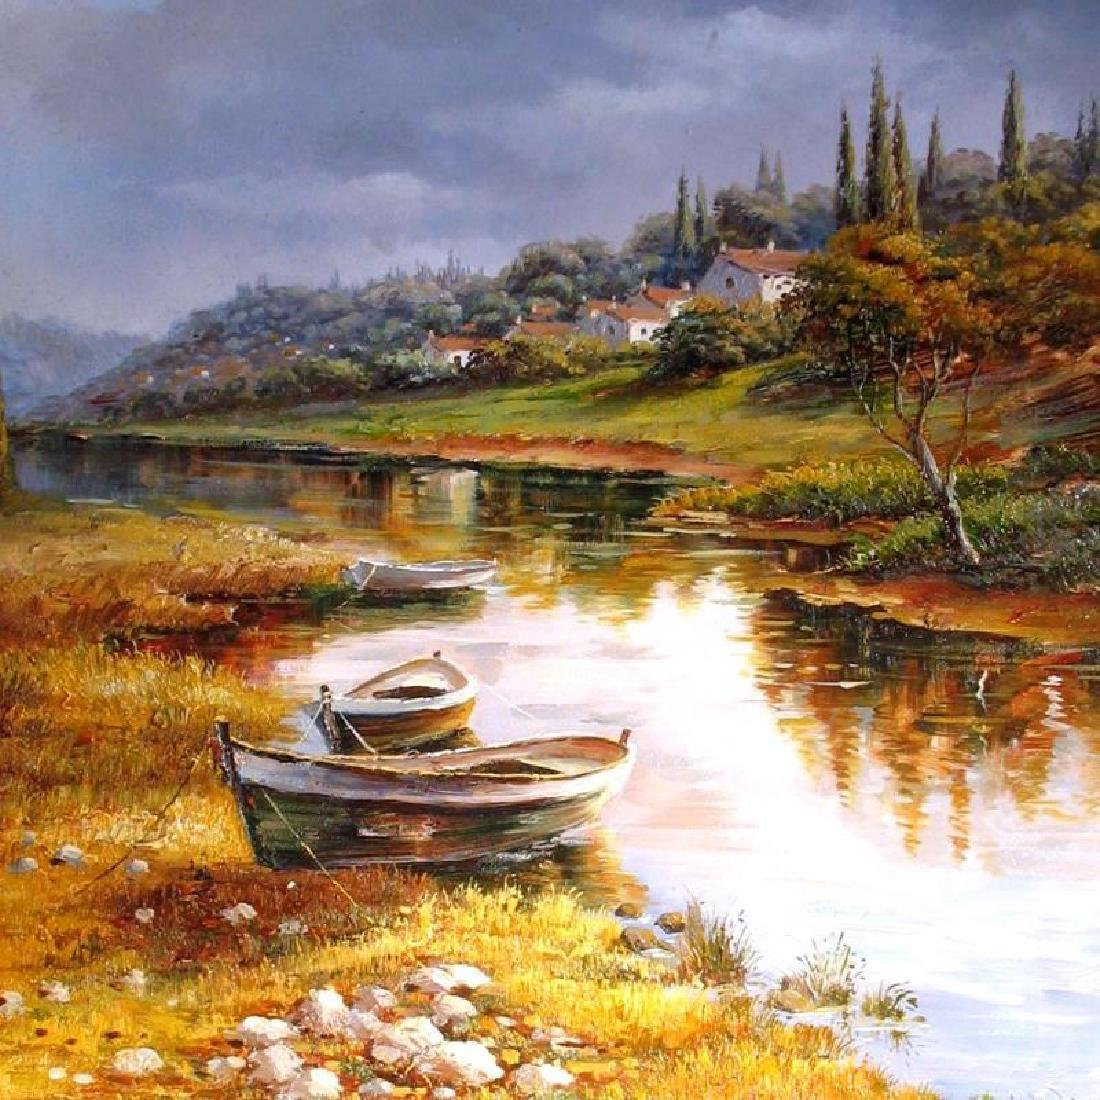 Water Boat Scene Detailed SIGNED Painting Canvas - 2